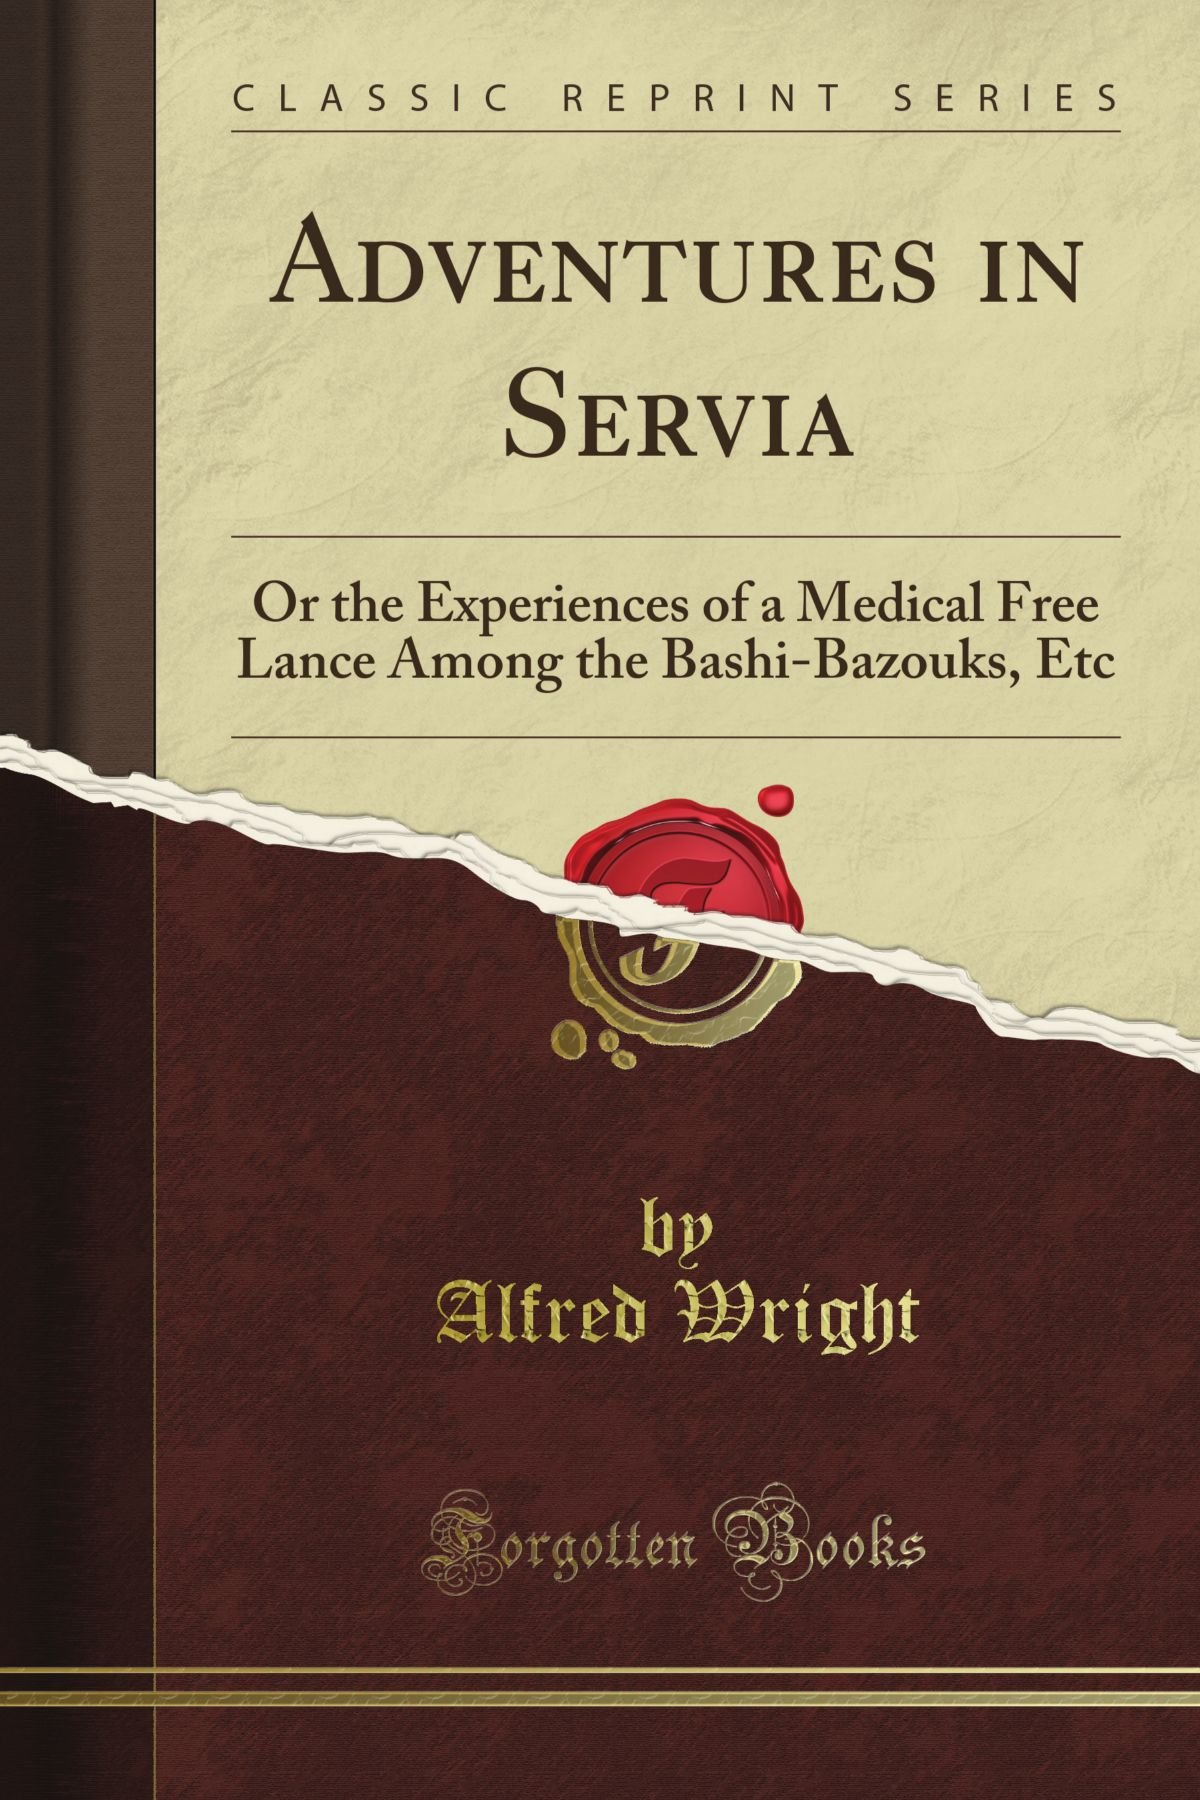 Adventures in Servia: Or the Experiences of a Medical Free Lance Among the Bashi-Bazouks, Etc (Classic Reprint) pdf epub